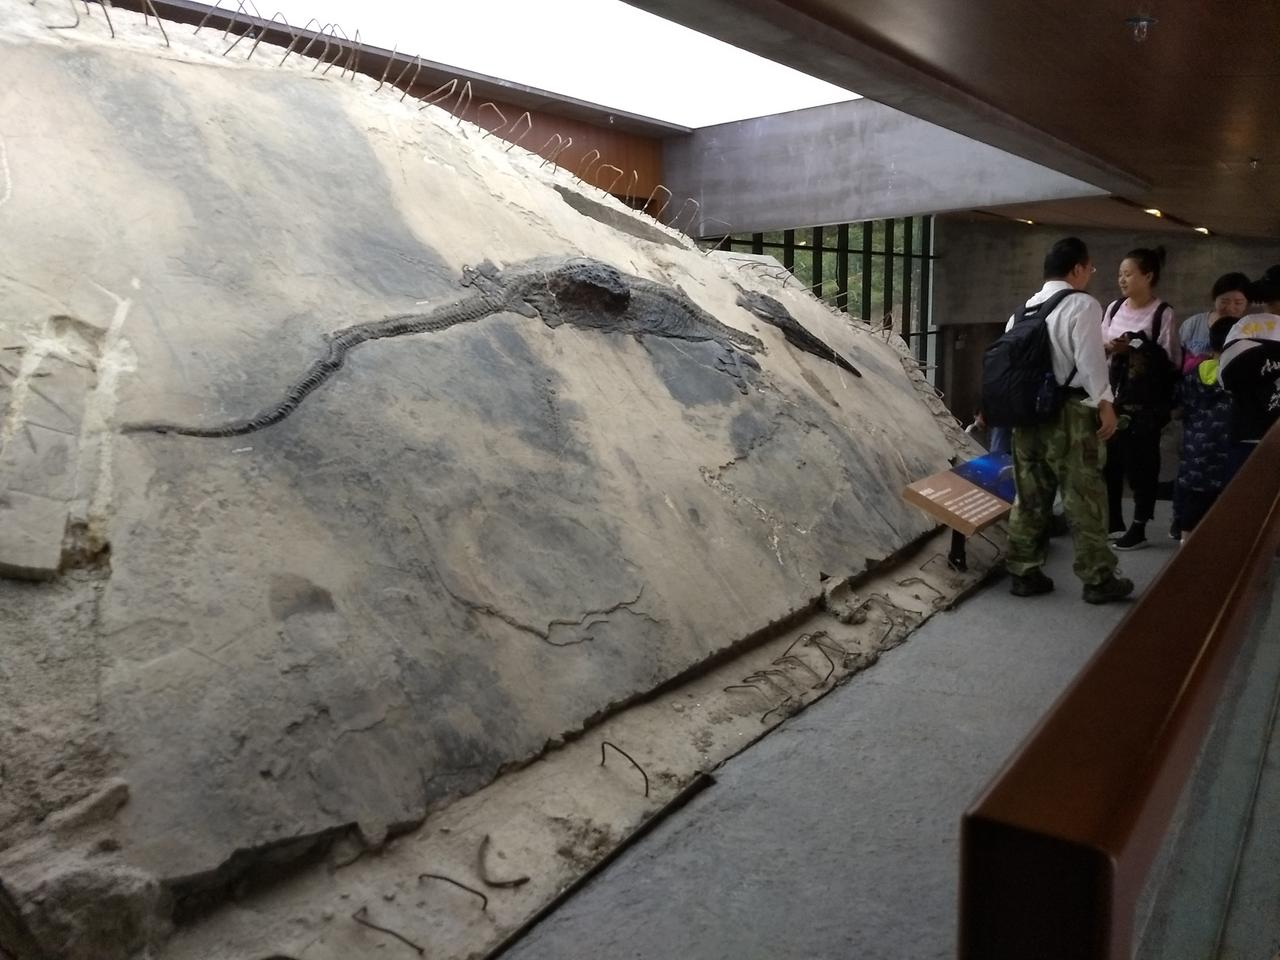 The ichthyosaur on display, with the stomach contents seen as a block extending from the body